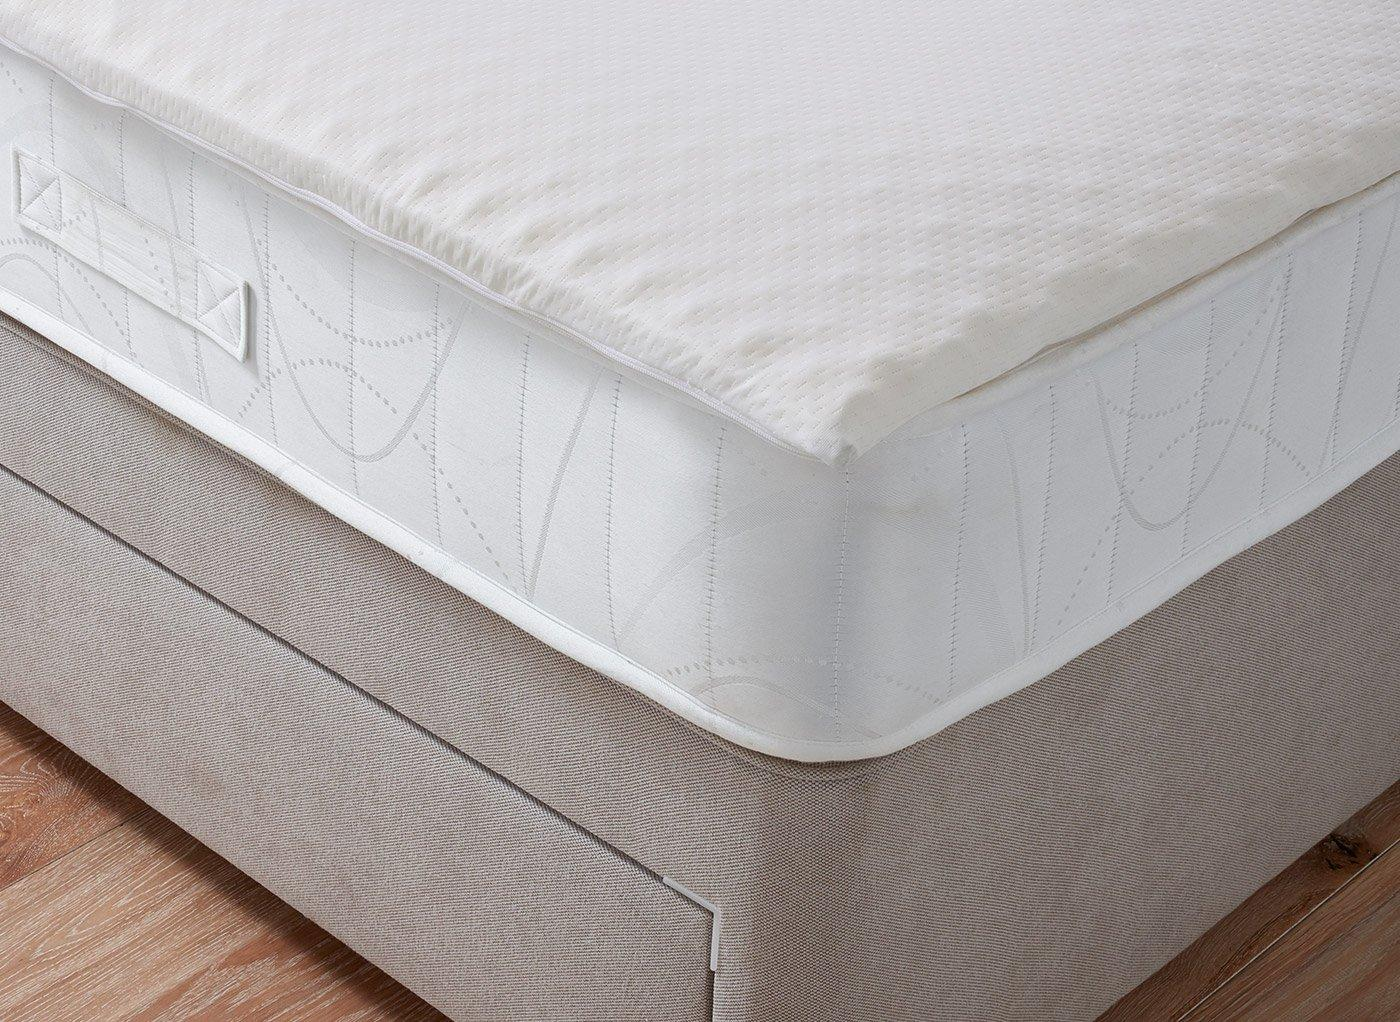 Doze Reversible Memory Foam Topper 6'0 Super king